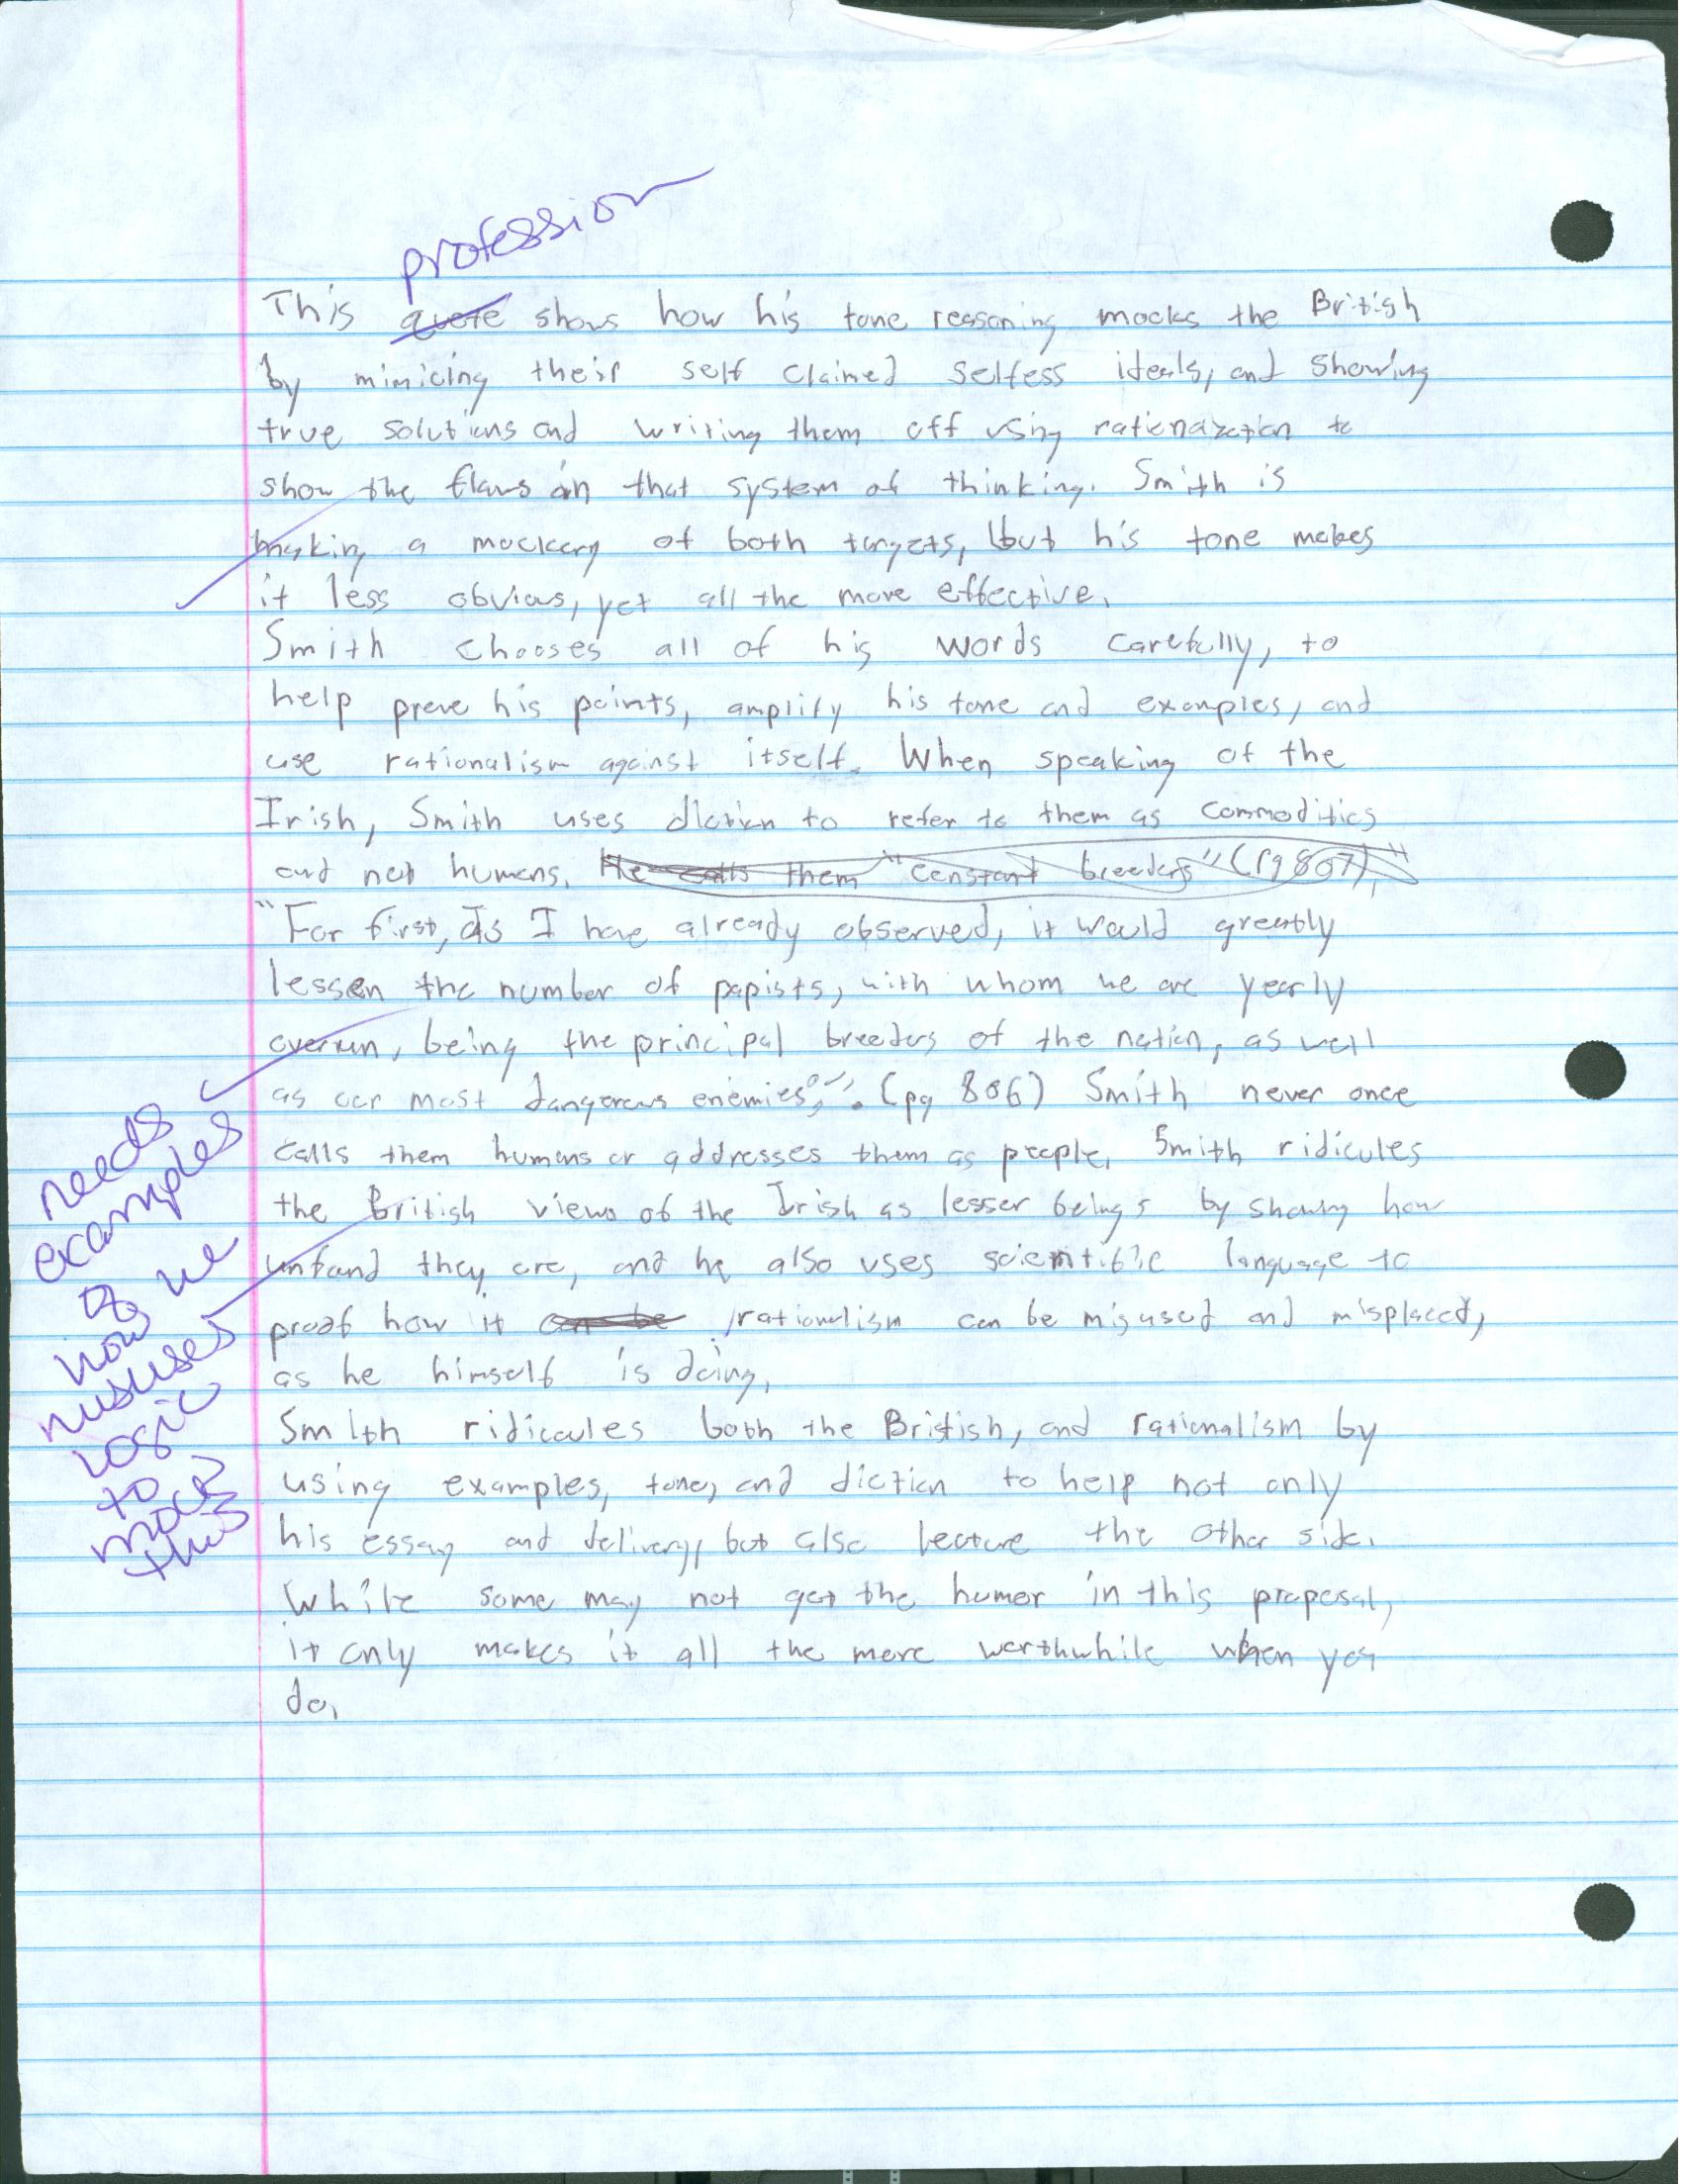 023 Satire Essay Ideas Synthesis Topic Example Of Target